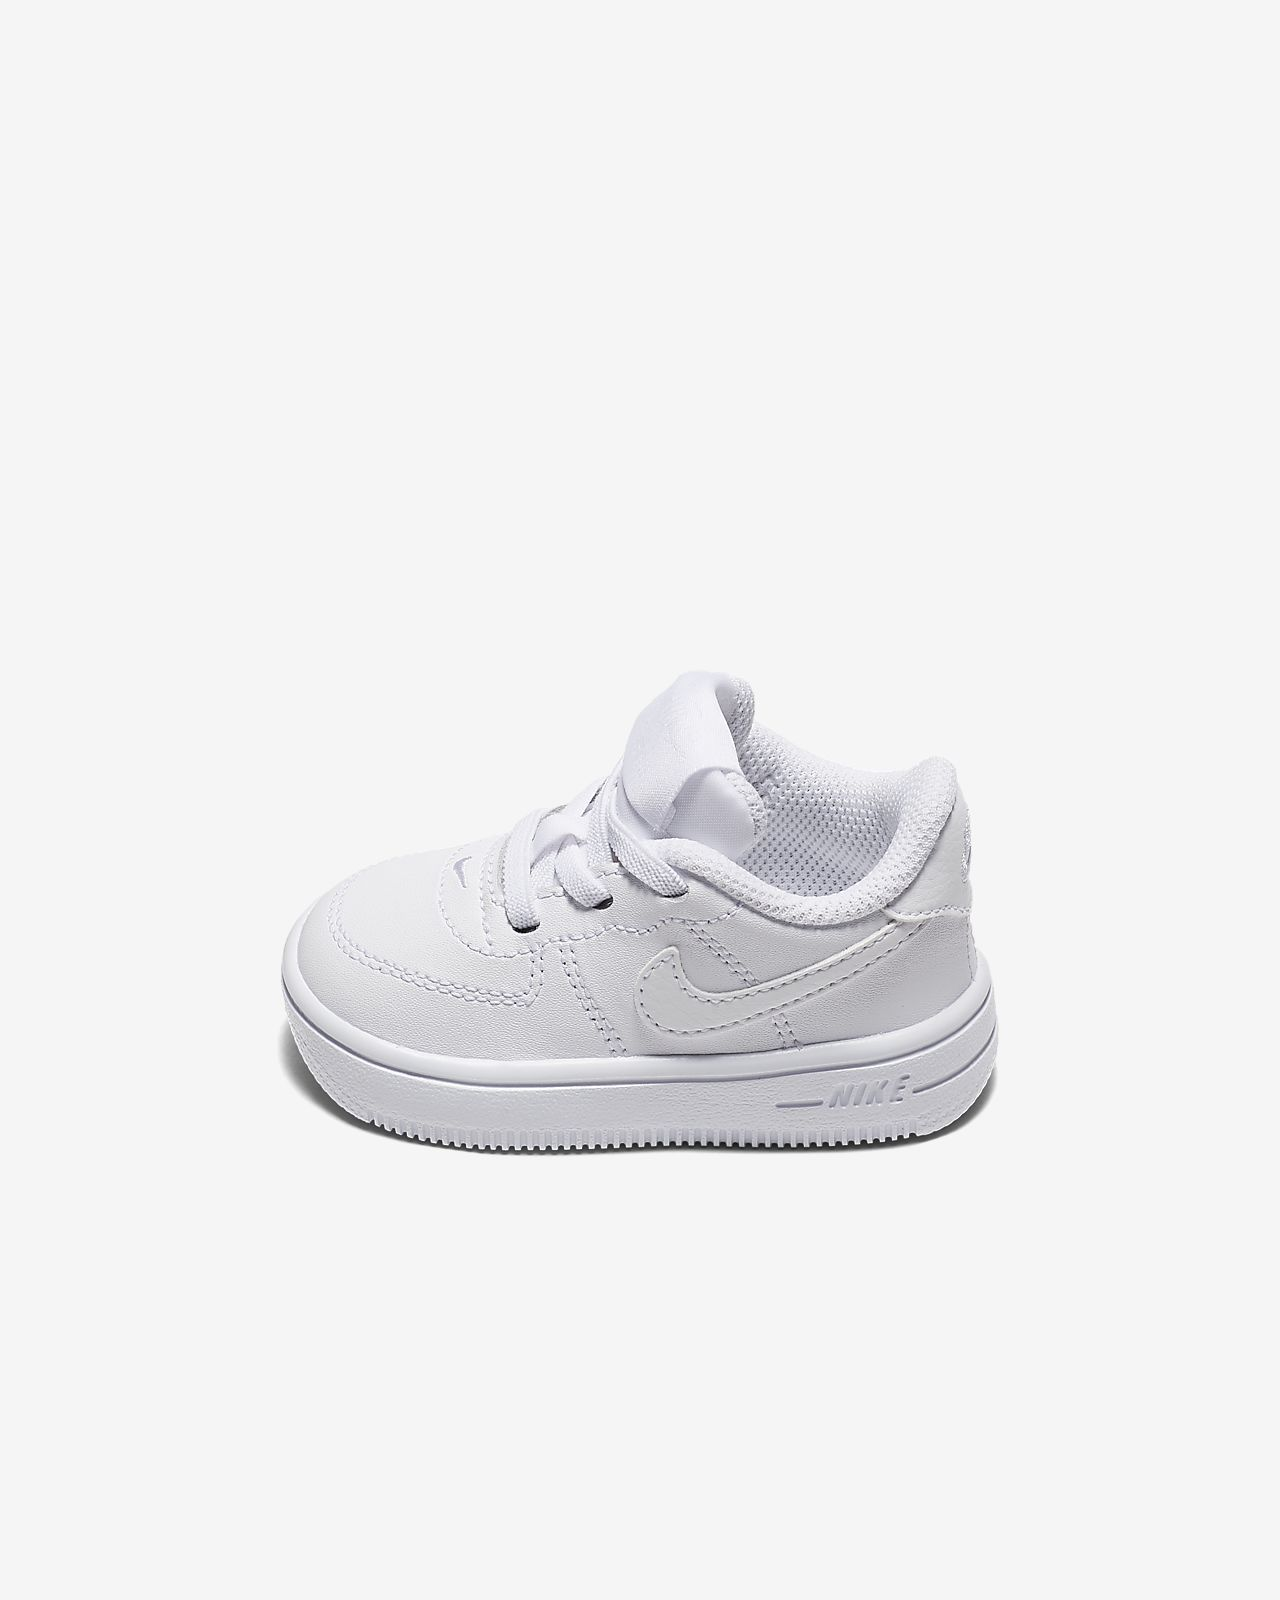 3c254ef50a Nike Force 1 '18 Infant/Toddler Shoe